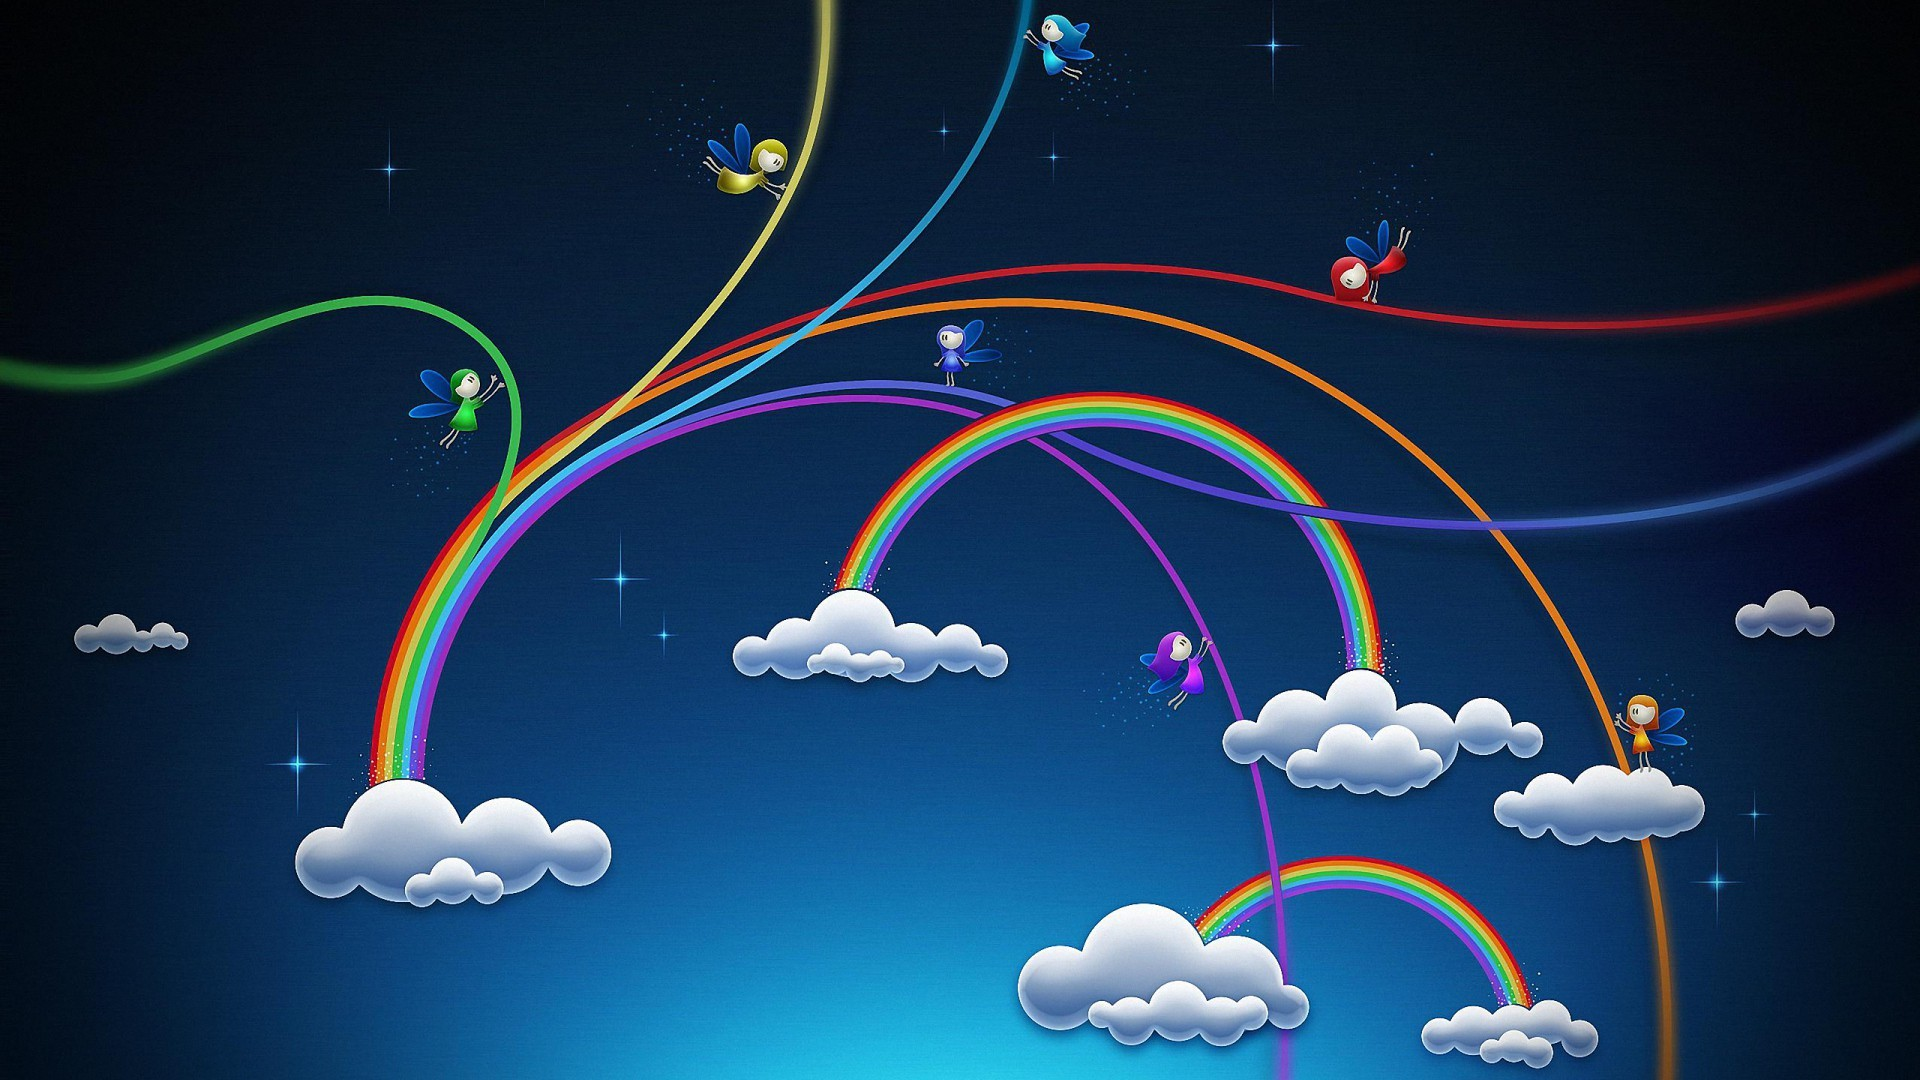 Res: 1920x1080, creative rainbow design cartoon